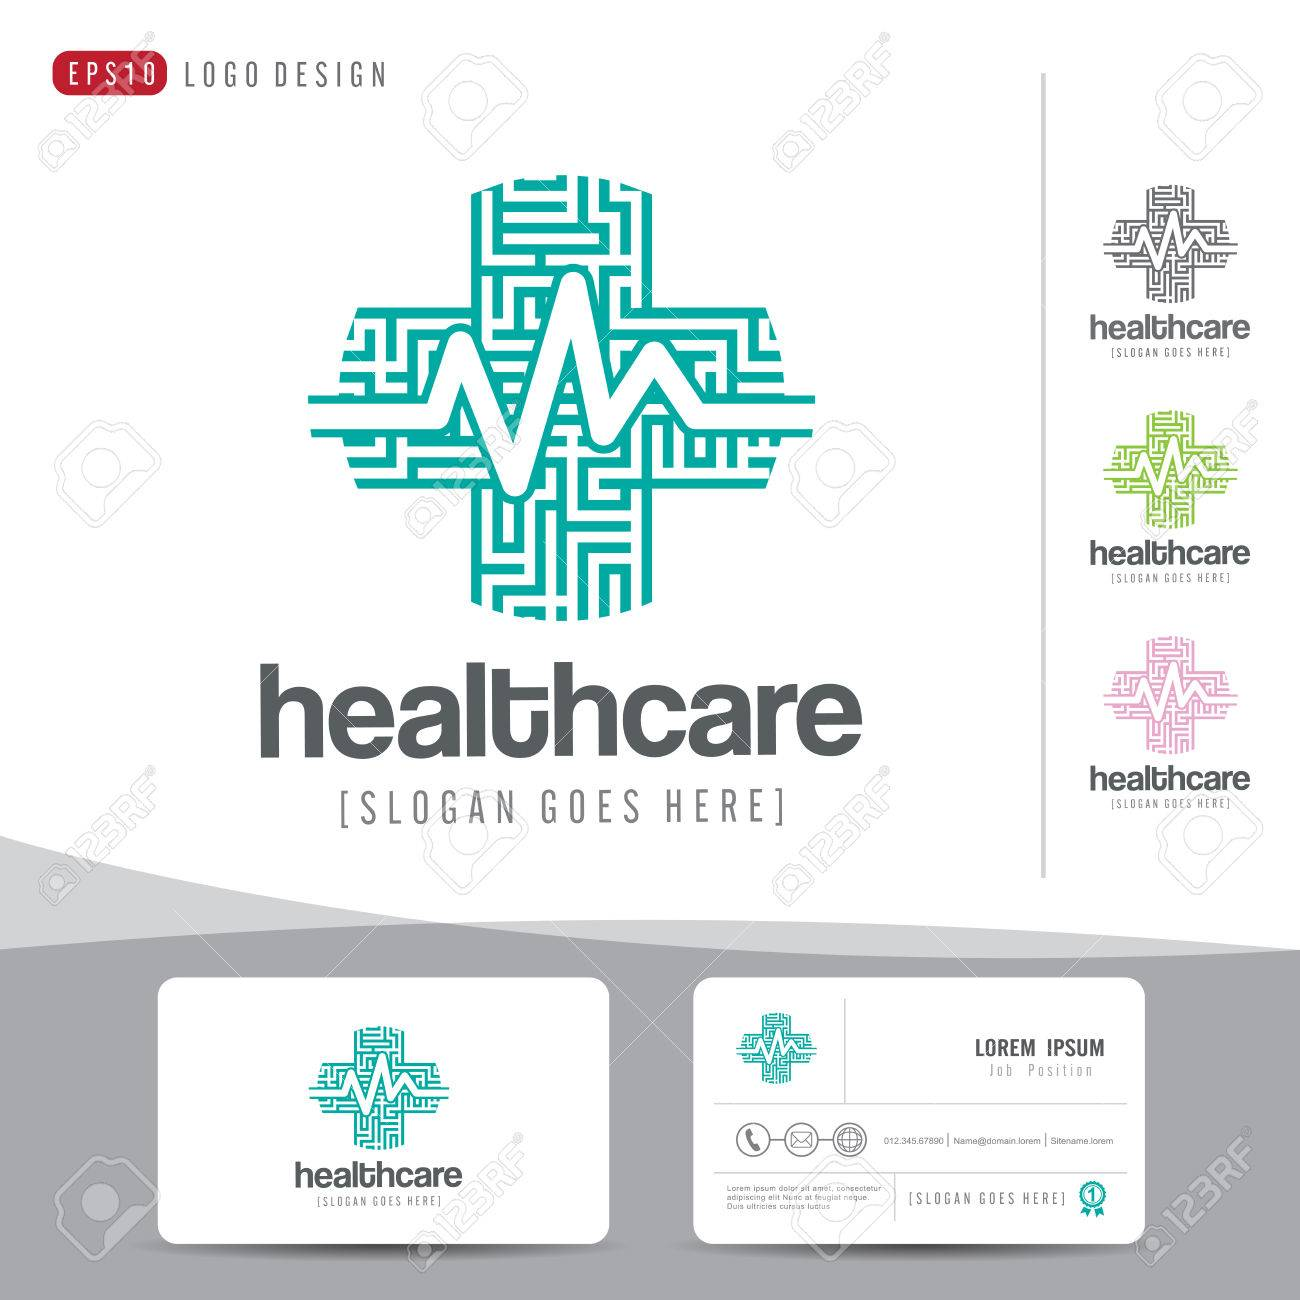 Health Service Business Cards Stock Photos. Royalty Free Health ...